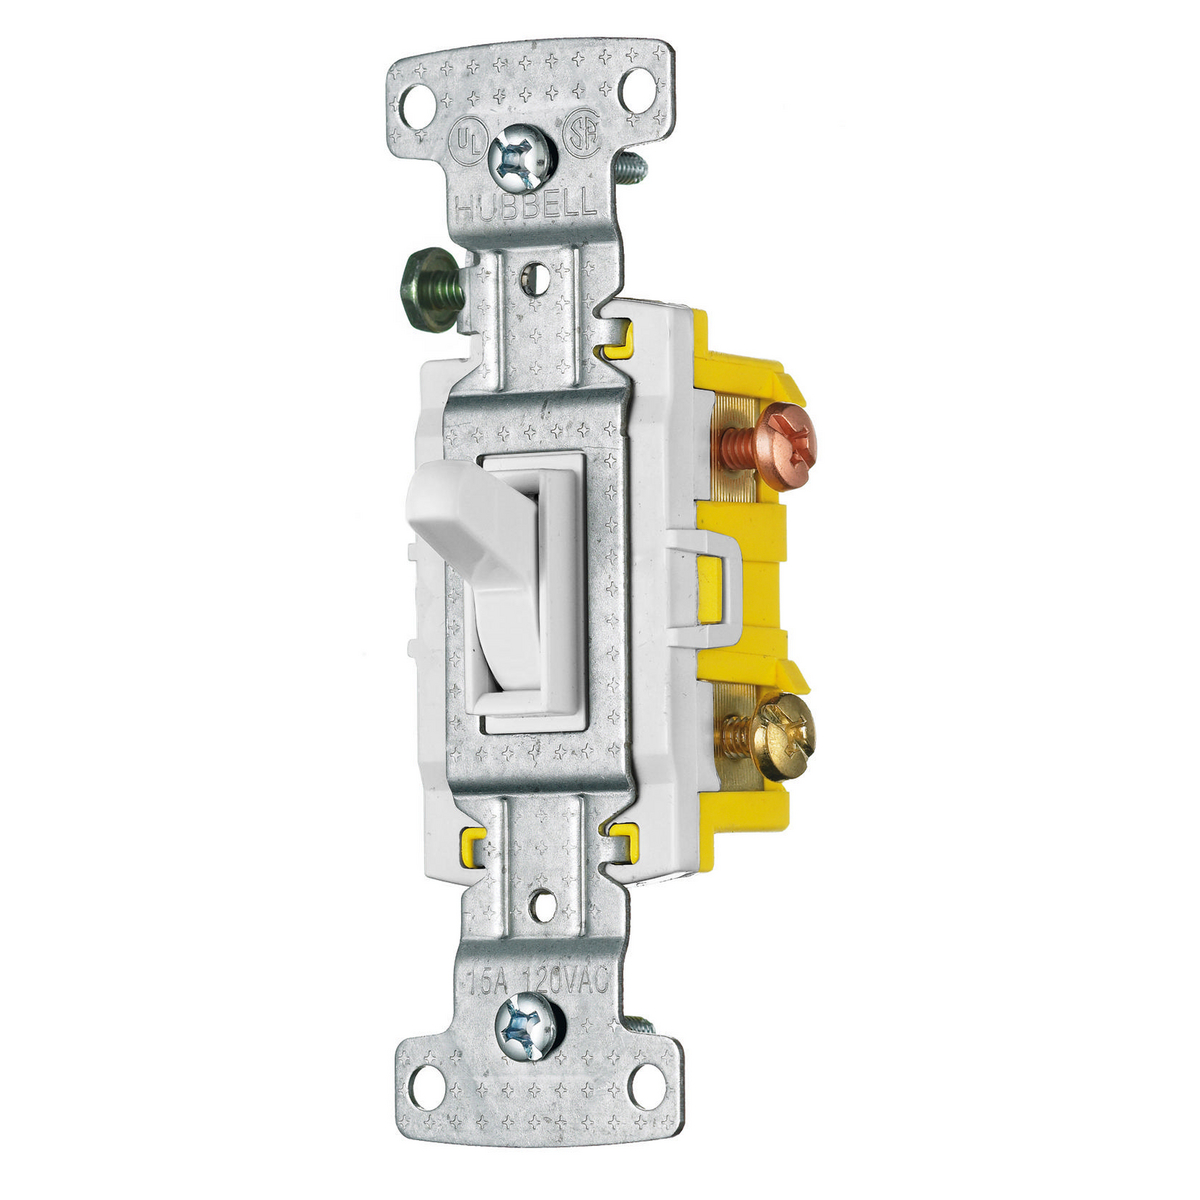 Hubbell RS315W 15 Amp 120 VAC 3-Way White Toggle Switch